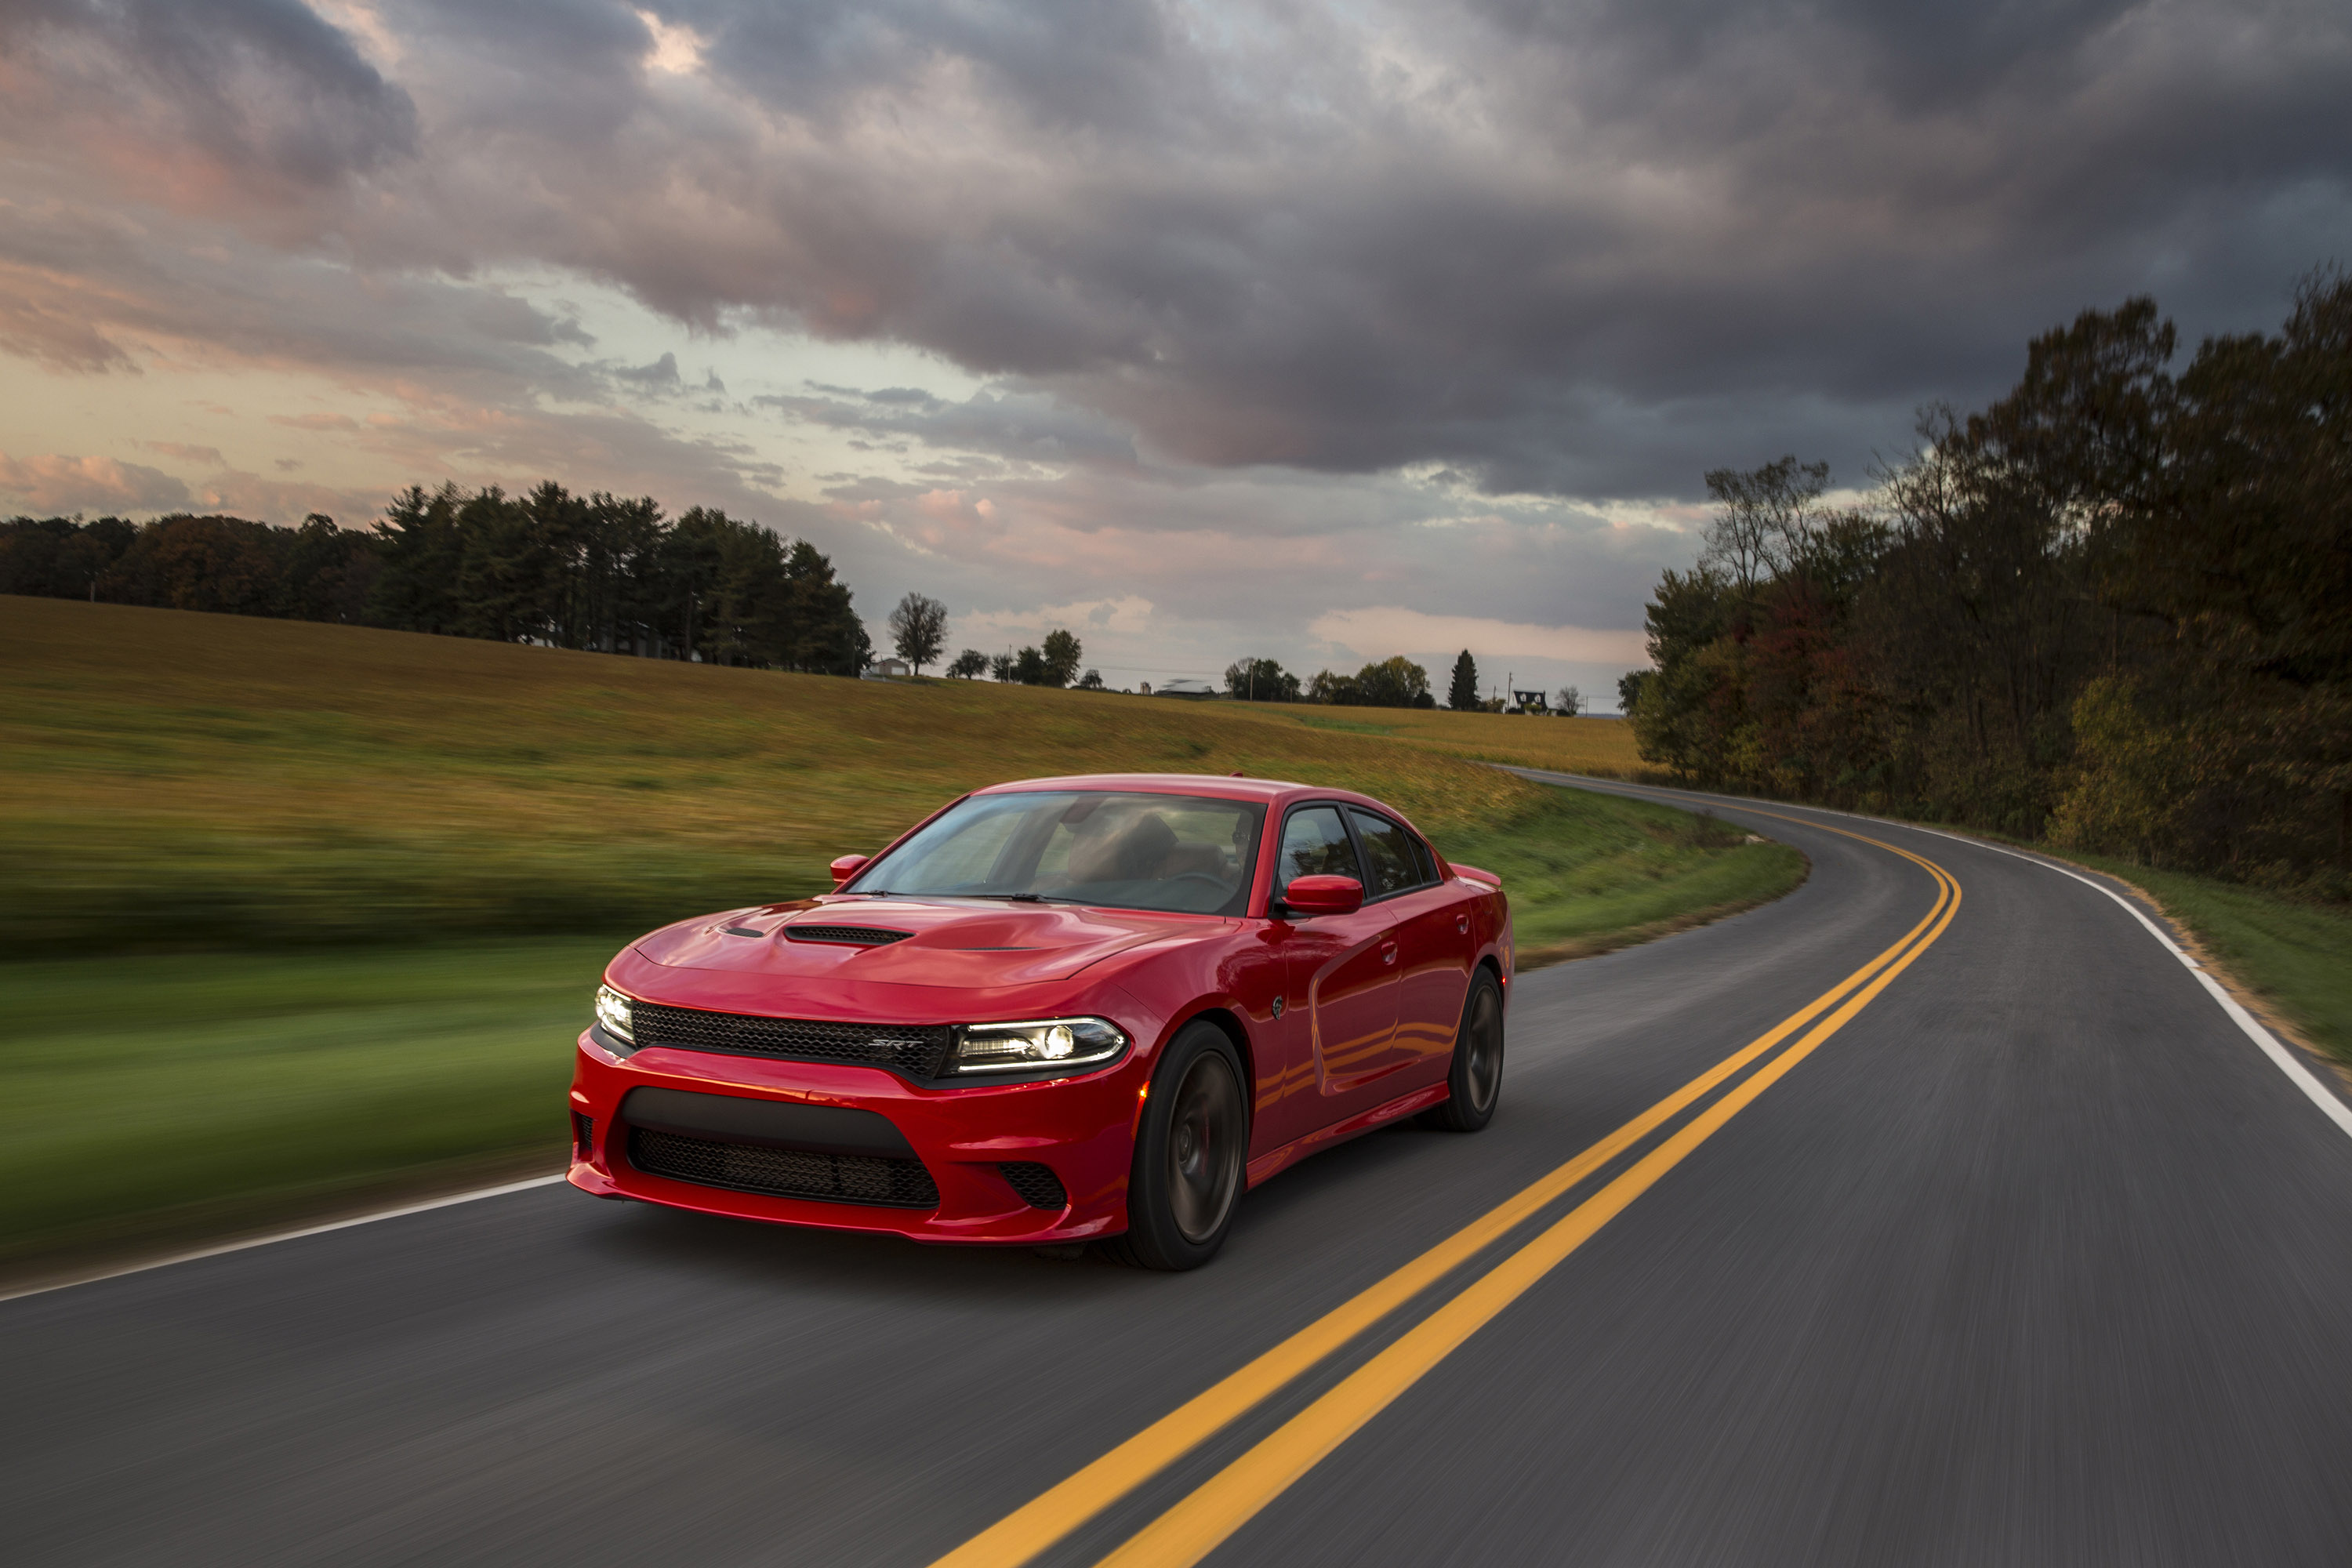 Fastest Car In The World Wallpaper 2015 Dodge Challenger And Charger Srt Hellcat Vehicles Are The